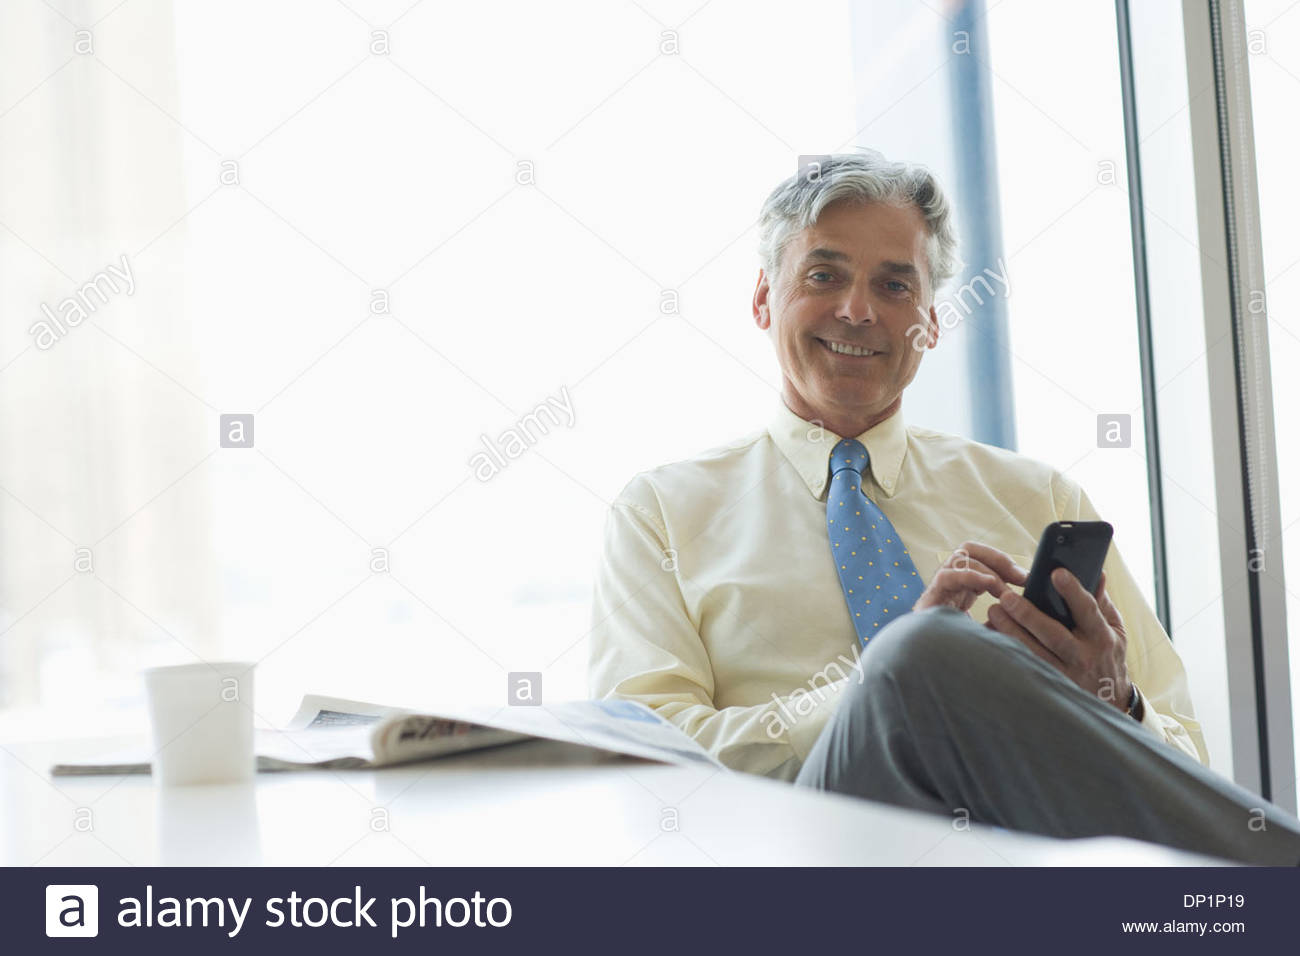 Businessman text messaging on cell phone in cafeteria - Stock Image